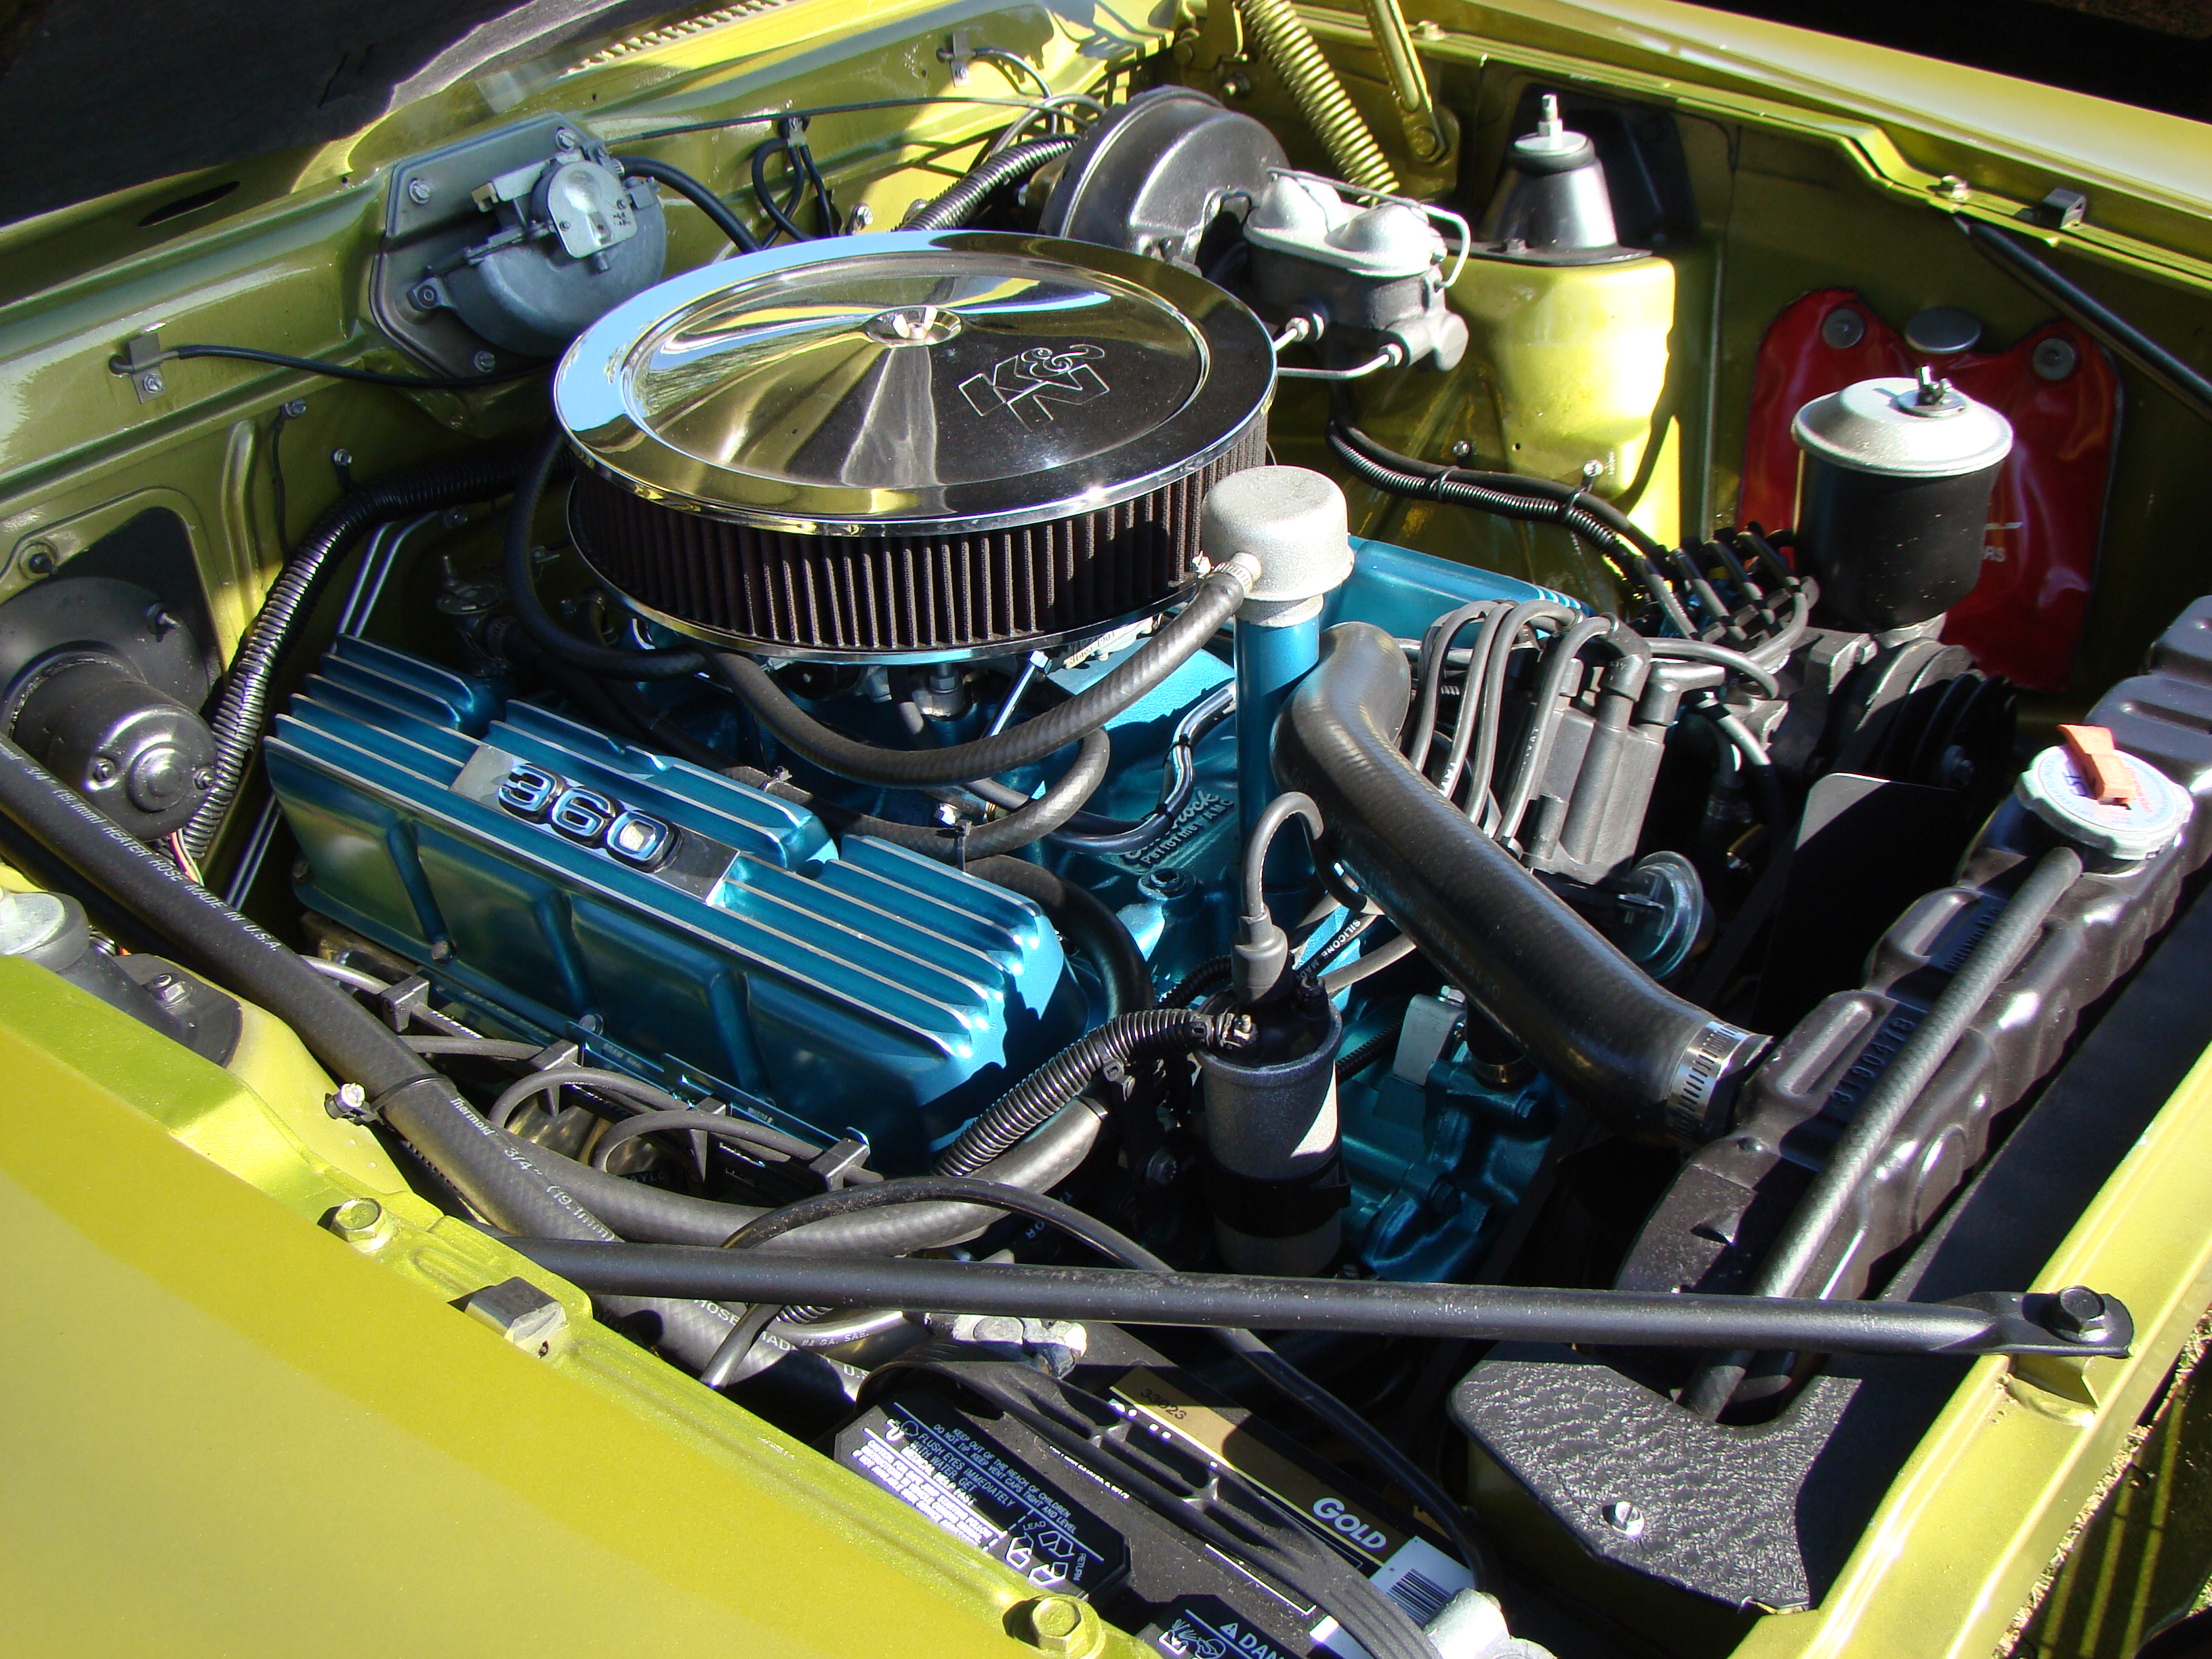 File:AMC V8 engine 360 CID customized um.JPG